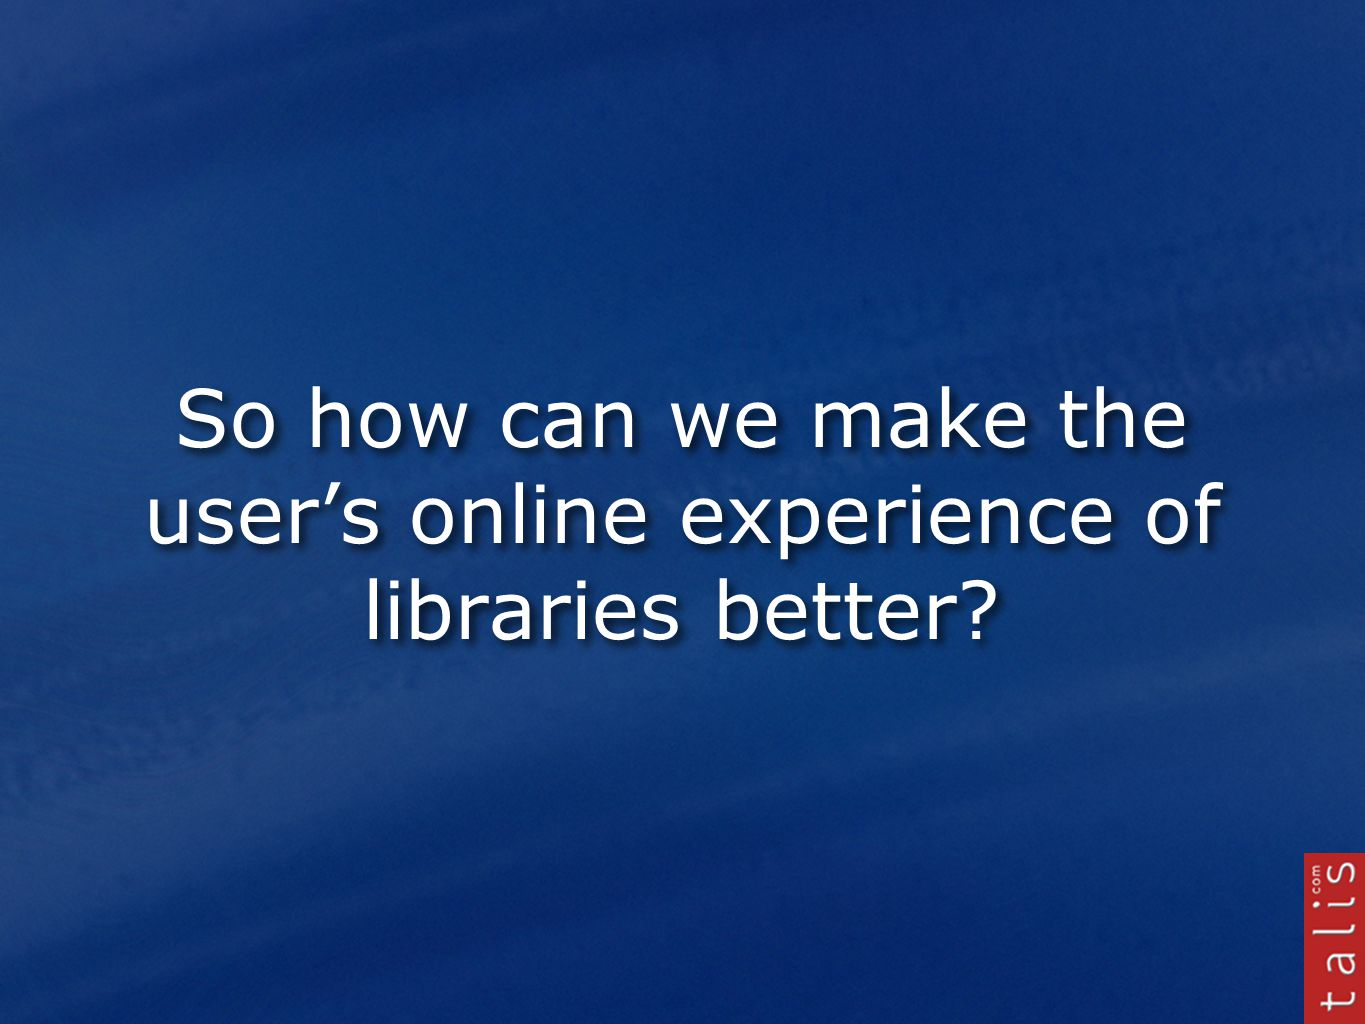 So how can we make the user's online experience of libraries better